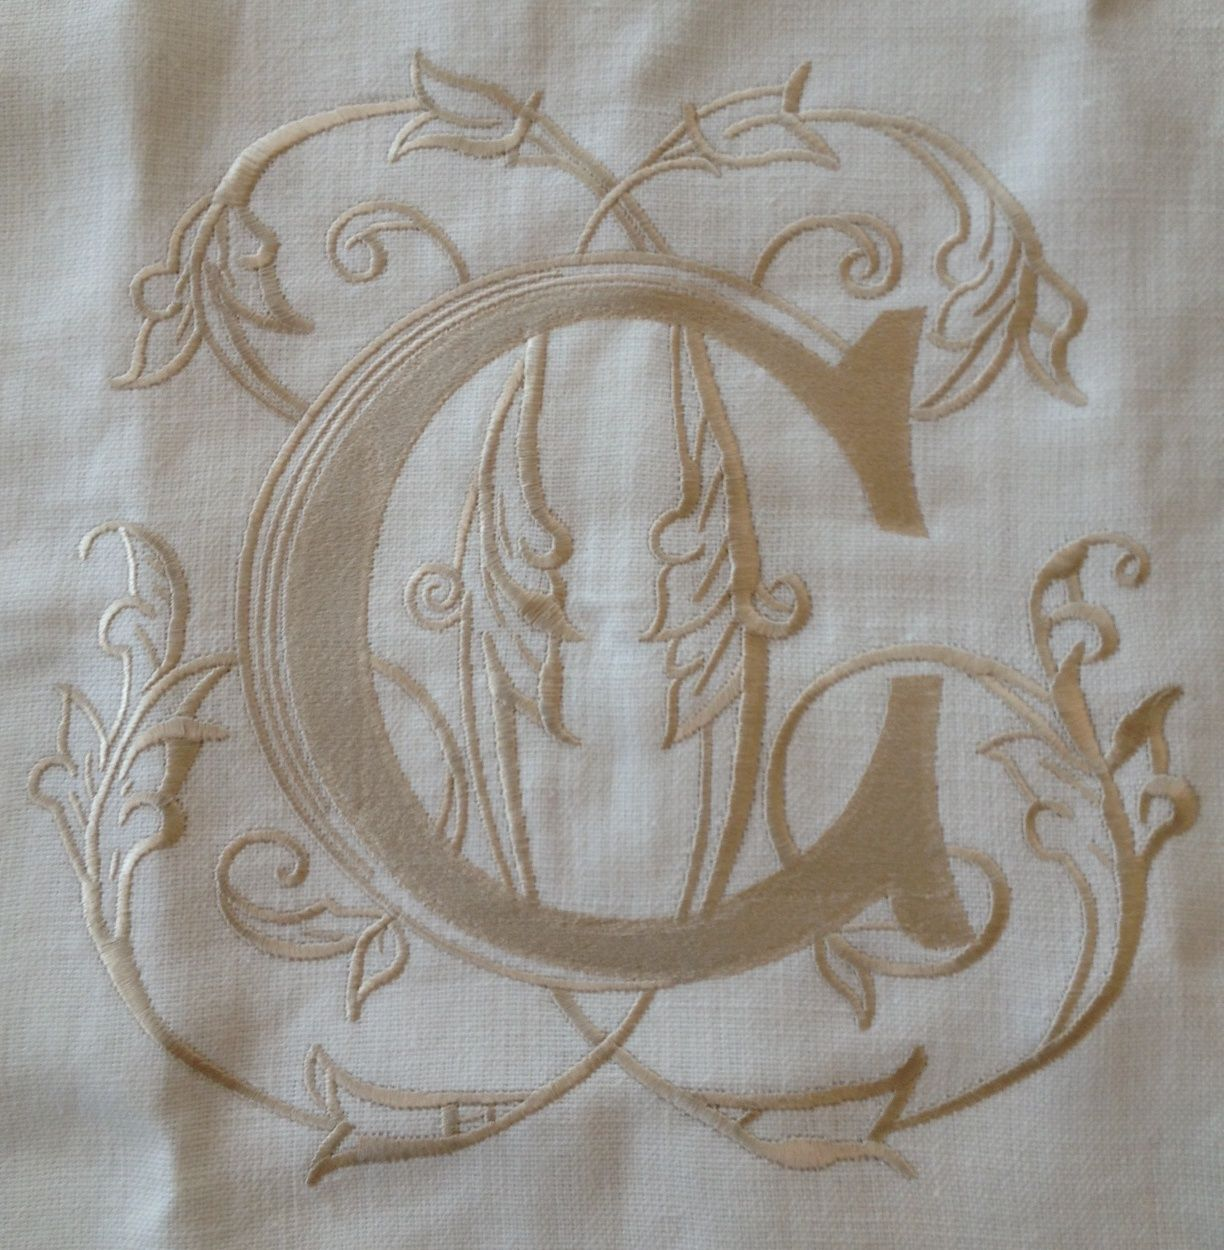 Number Four Eleven: Monograms